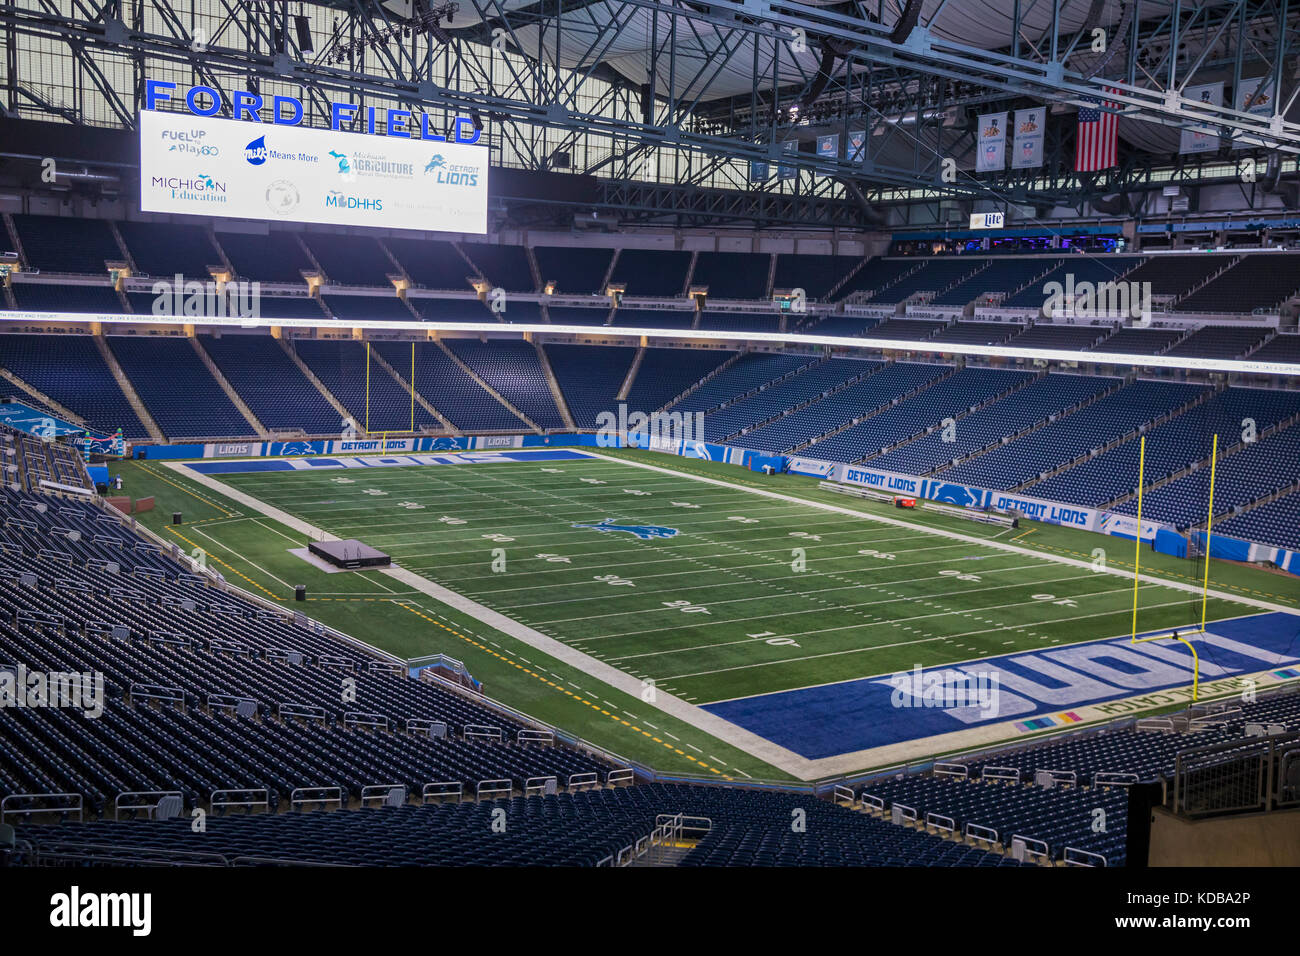 Detroit, Michigan - Ford Field, home of the Detroit Lions professional football team. - Stock Image